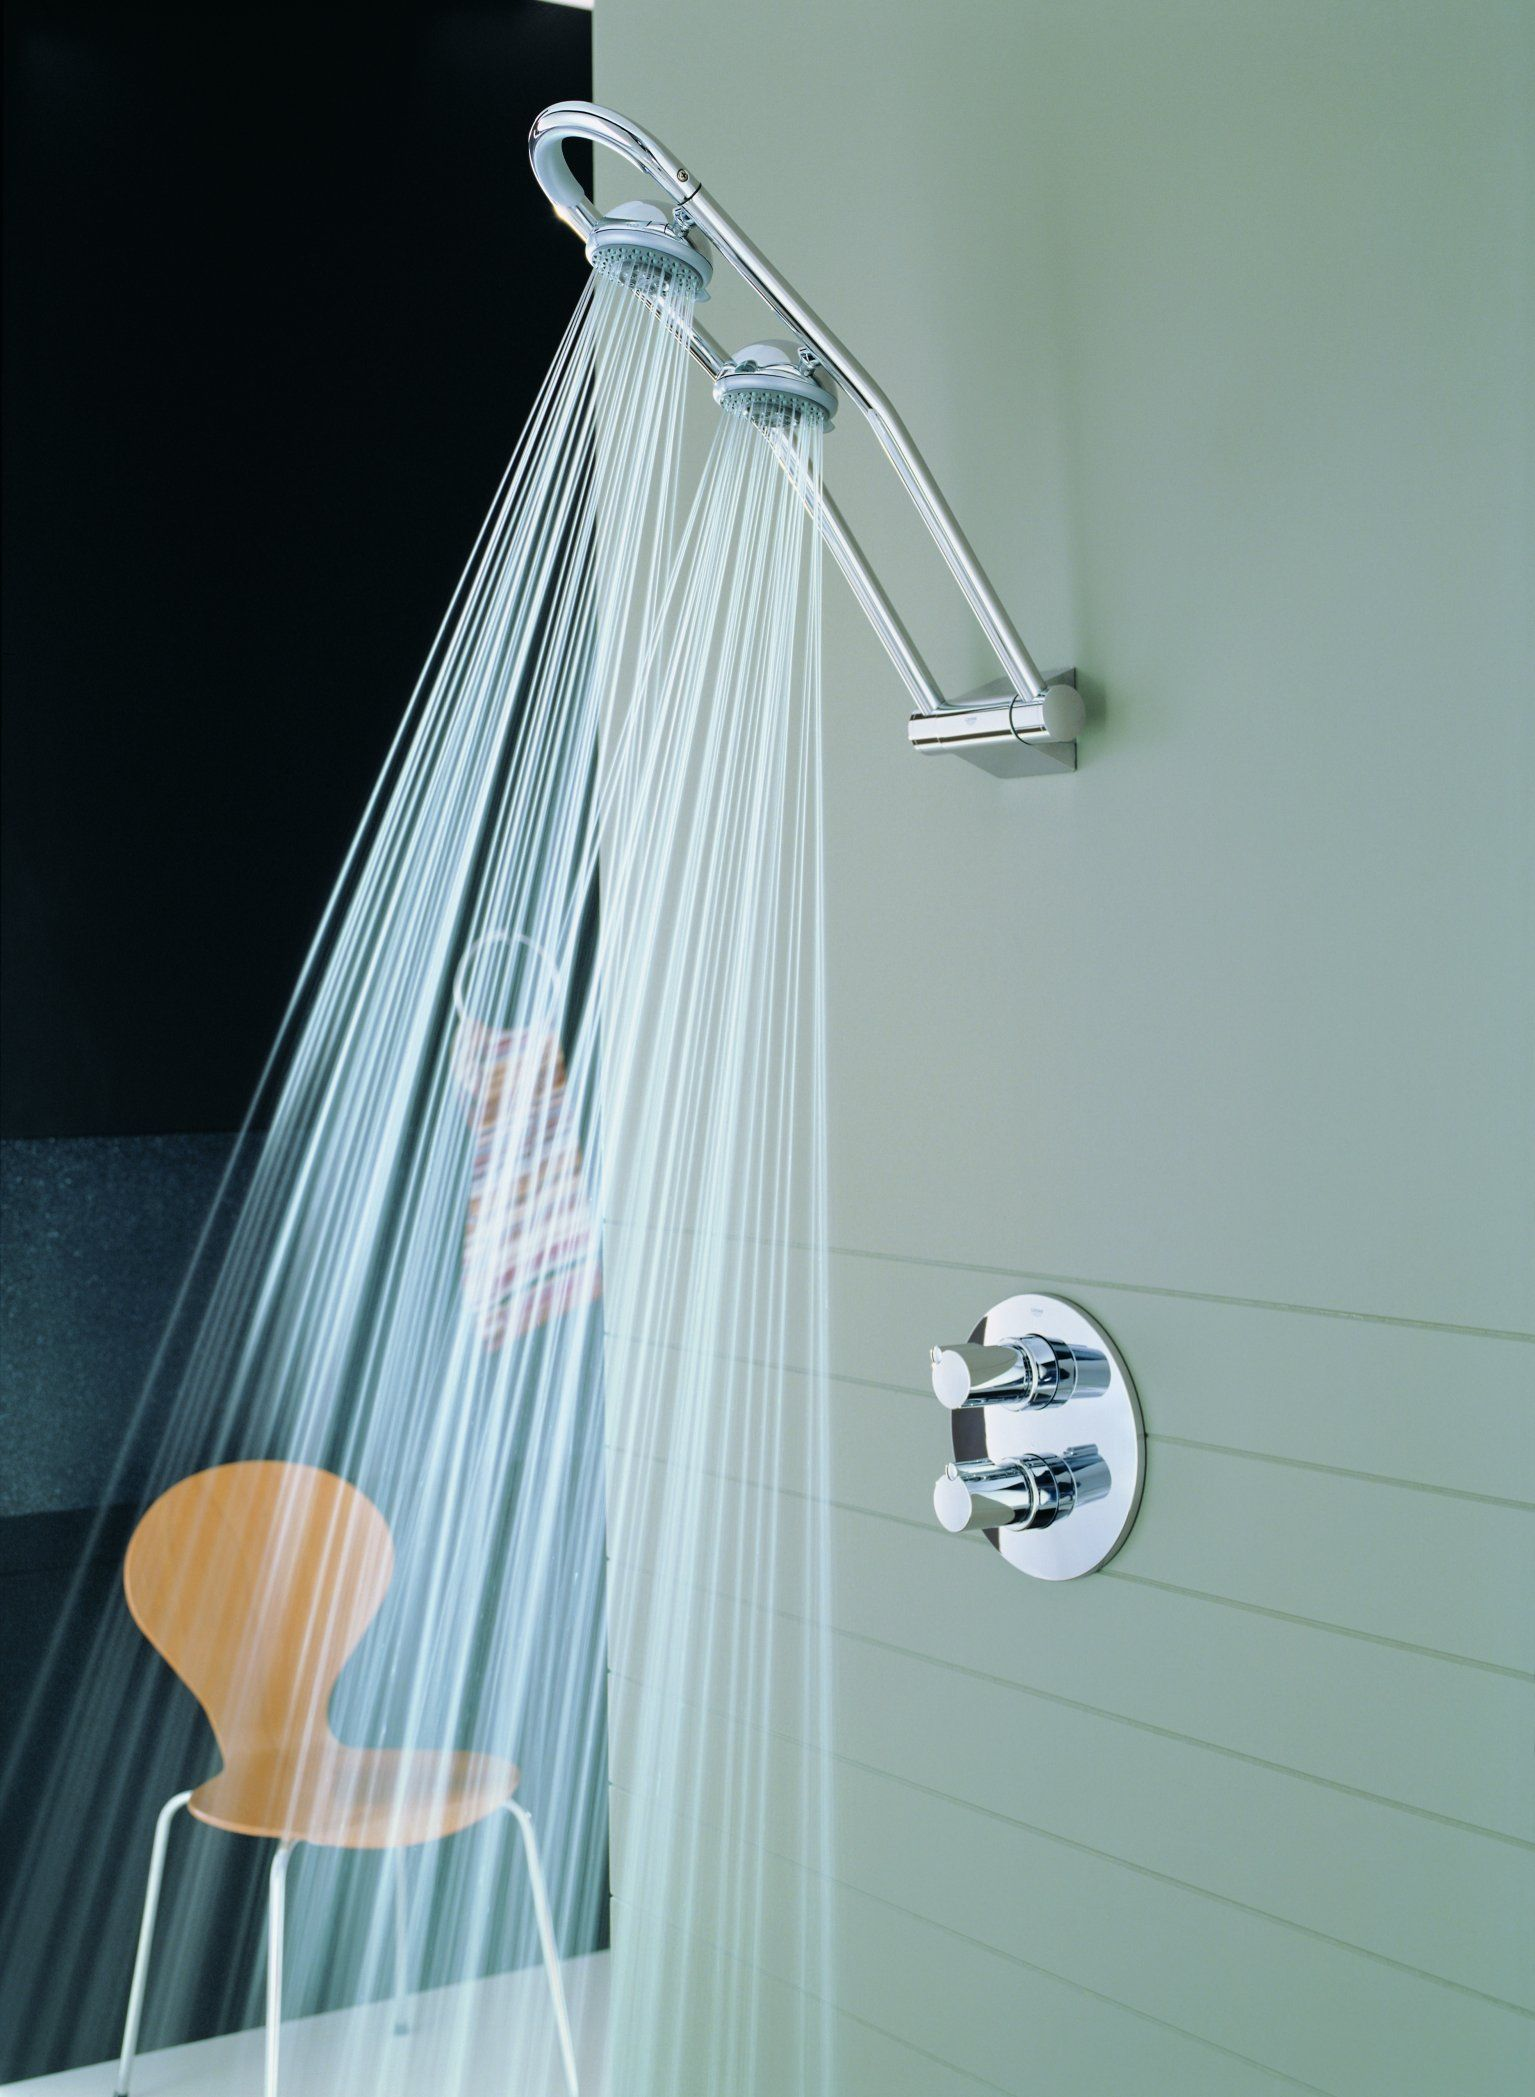 With two rotating shower heads, adjustable for use as head or side ...